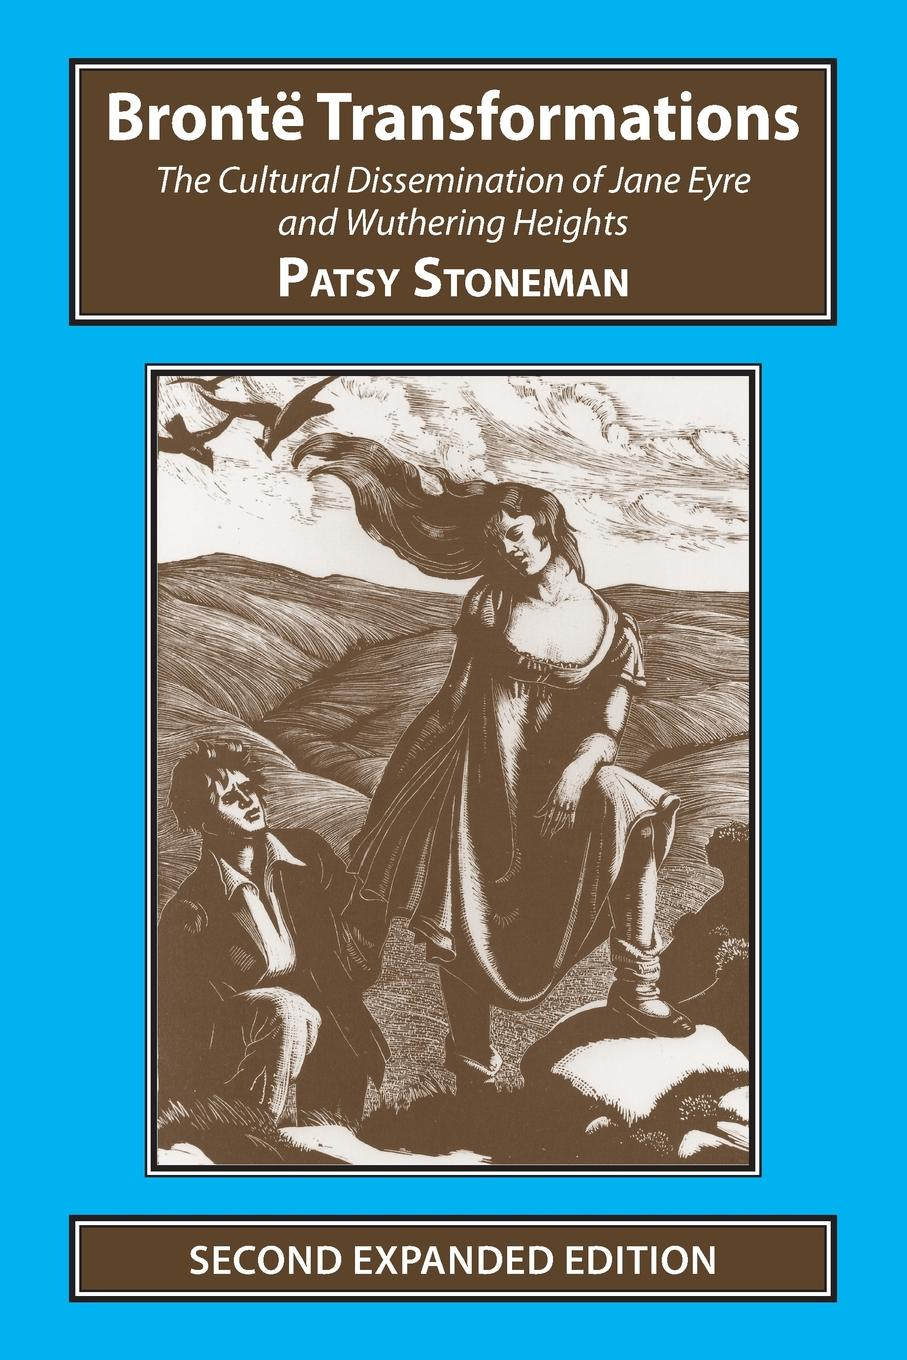 Patsy Stoneman Bronte Transformations. The Cultural Dissemination of Jane Eyre and Wuthering Heights